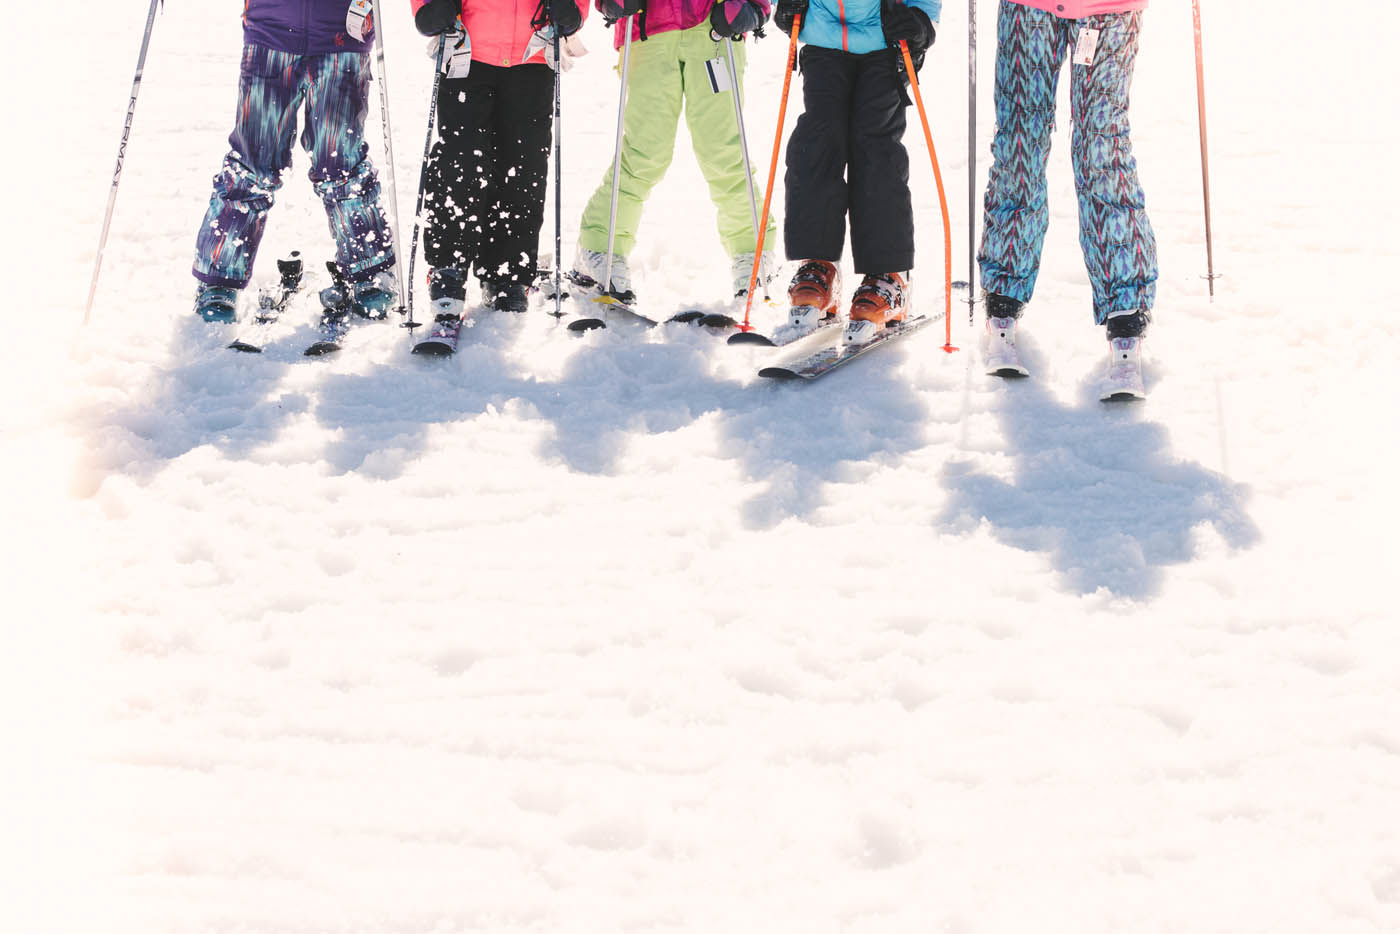 Kids on Skis in Line